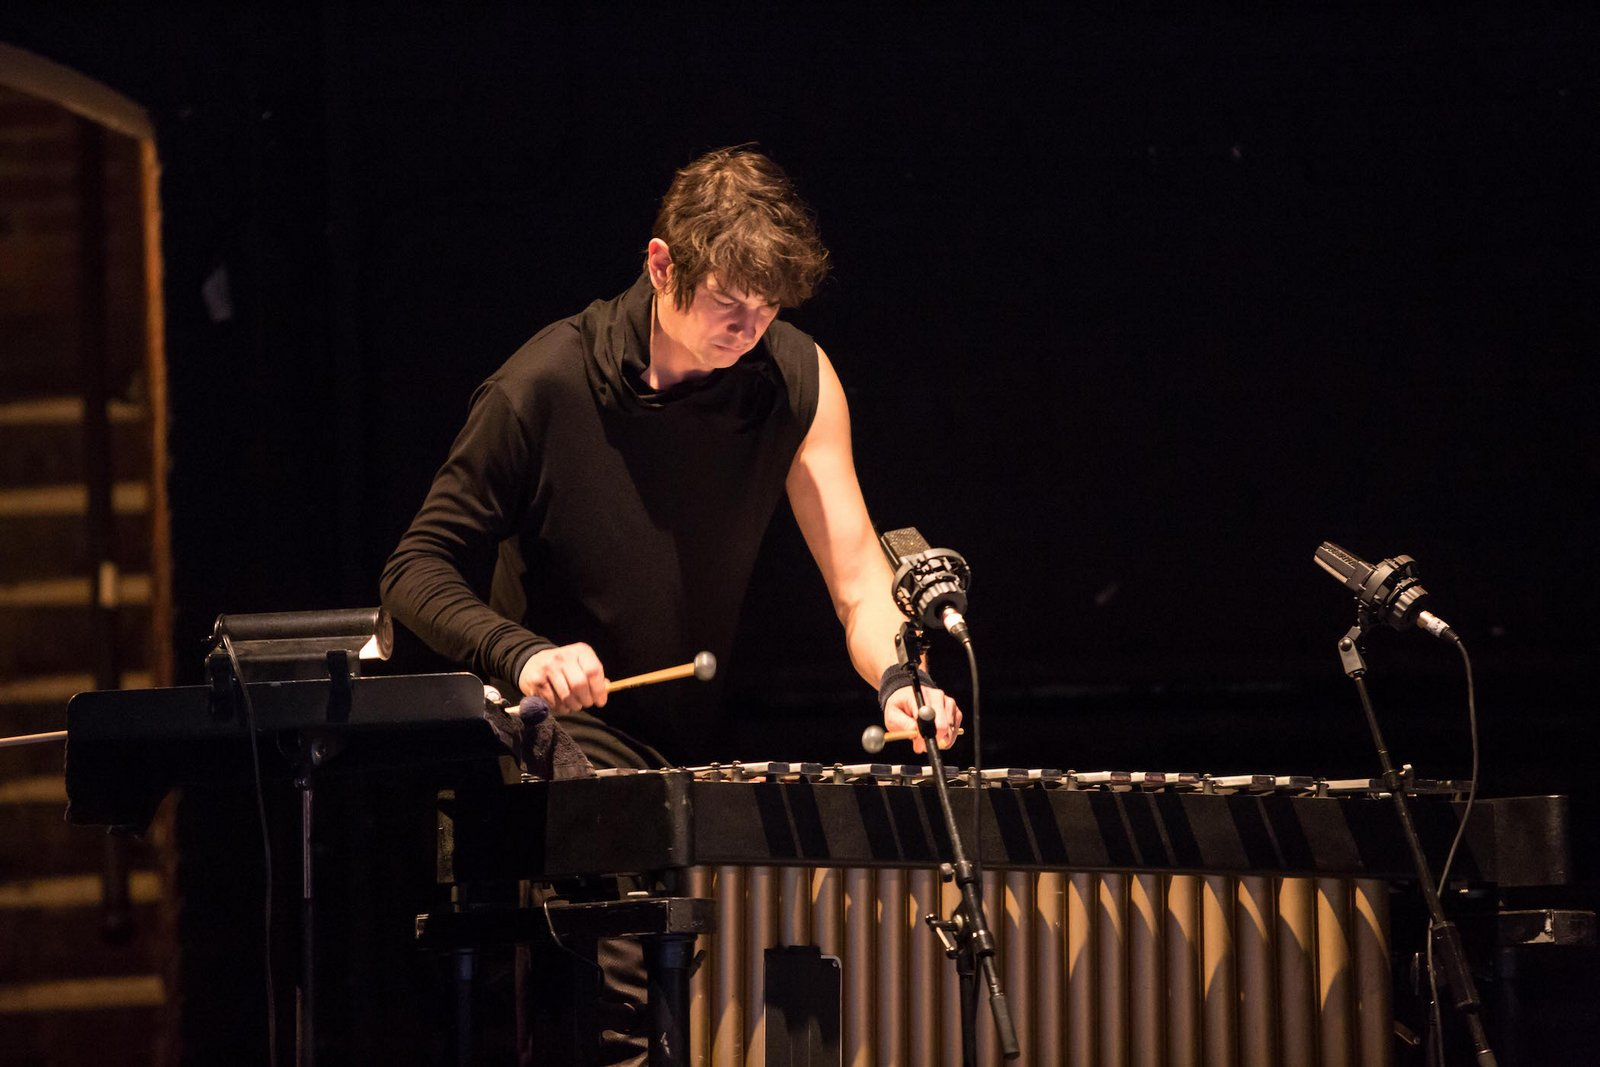 Ate 9 Dance Company: Percussionist Glenn Kotche performs live in calling glenn; PHOTO CREDIT: Courtesy of Ate9